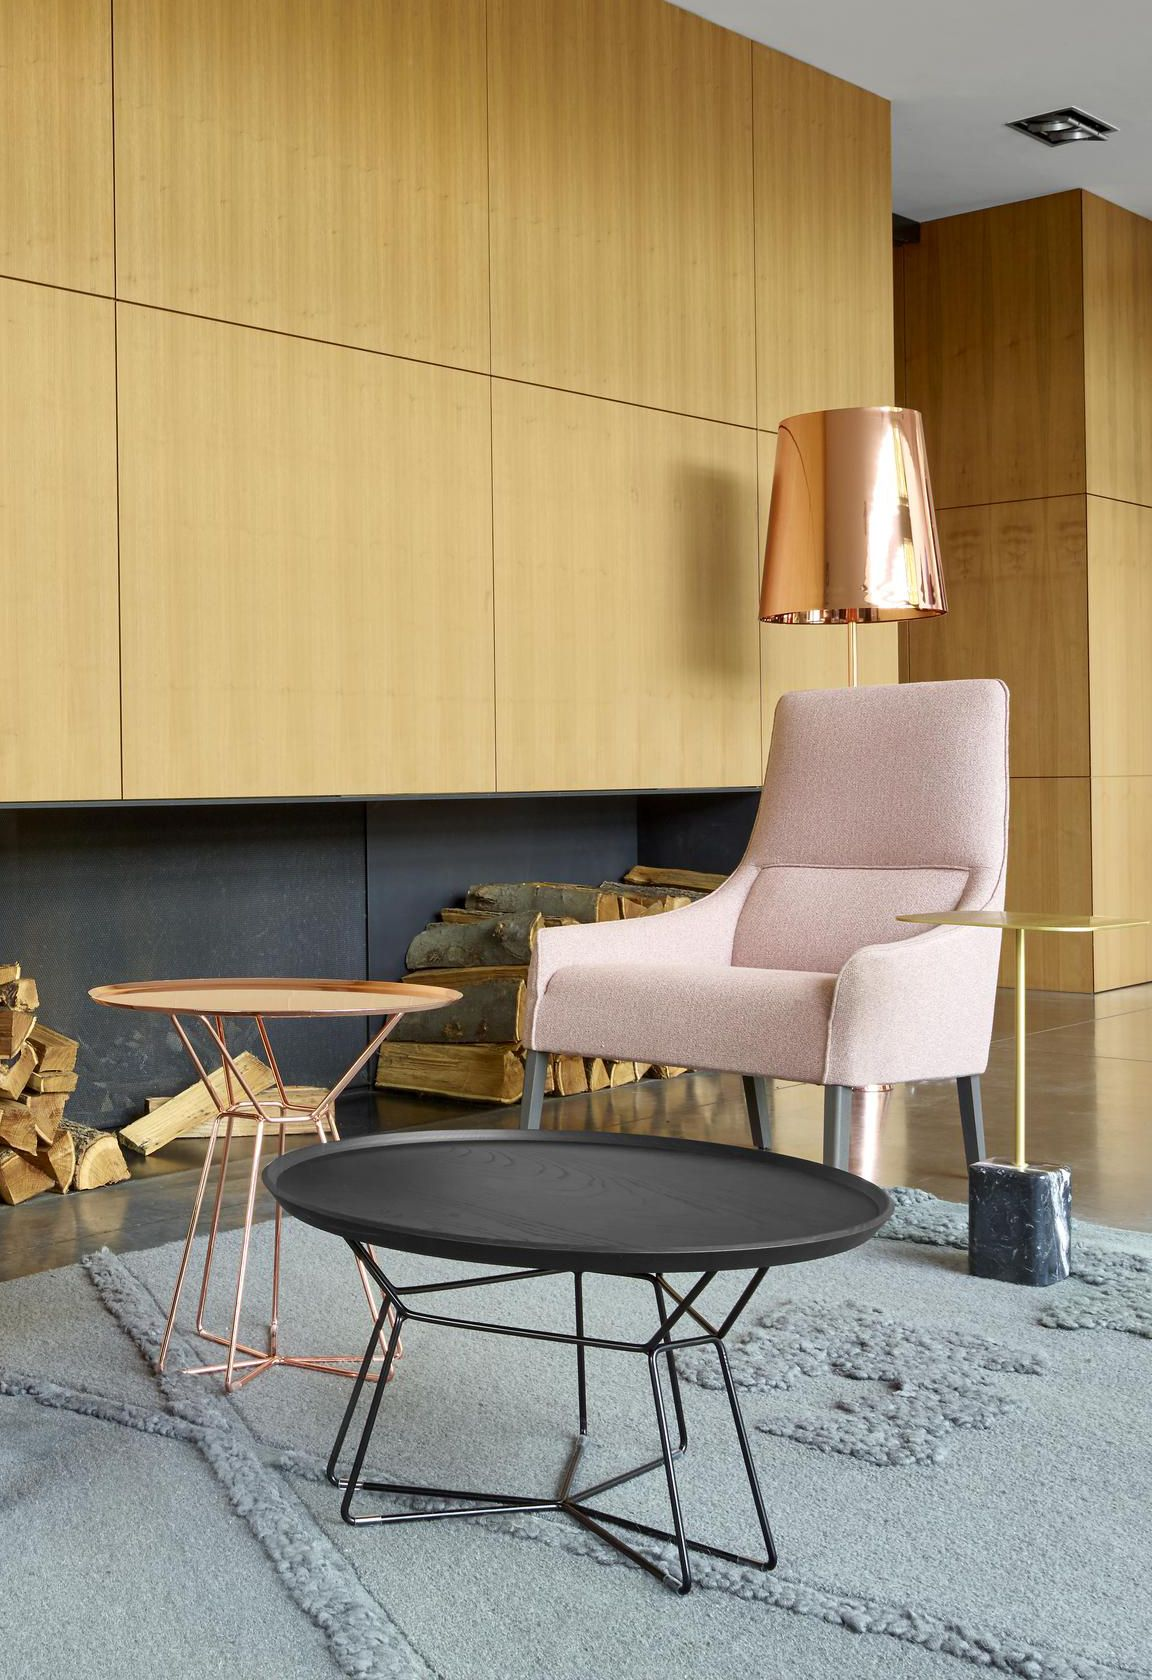 Long Island Armchair Designed By Nada Naralla Horner For Ligne Roset Available At Linea Inc Modern Furniture Los Angeles